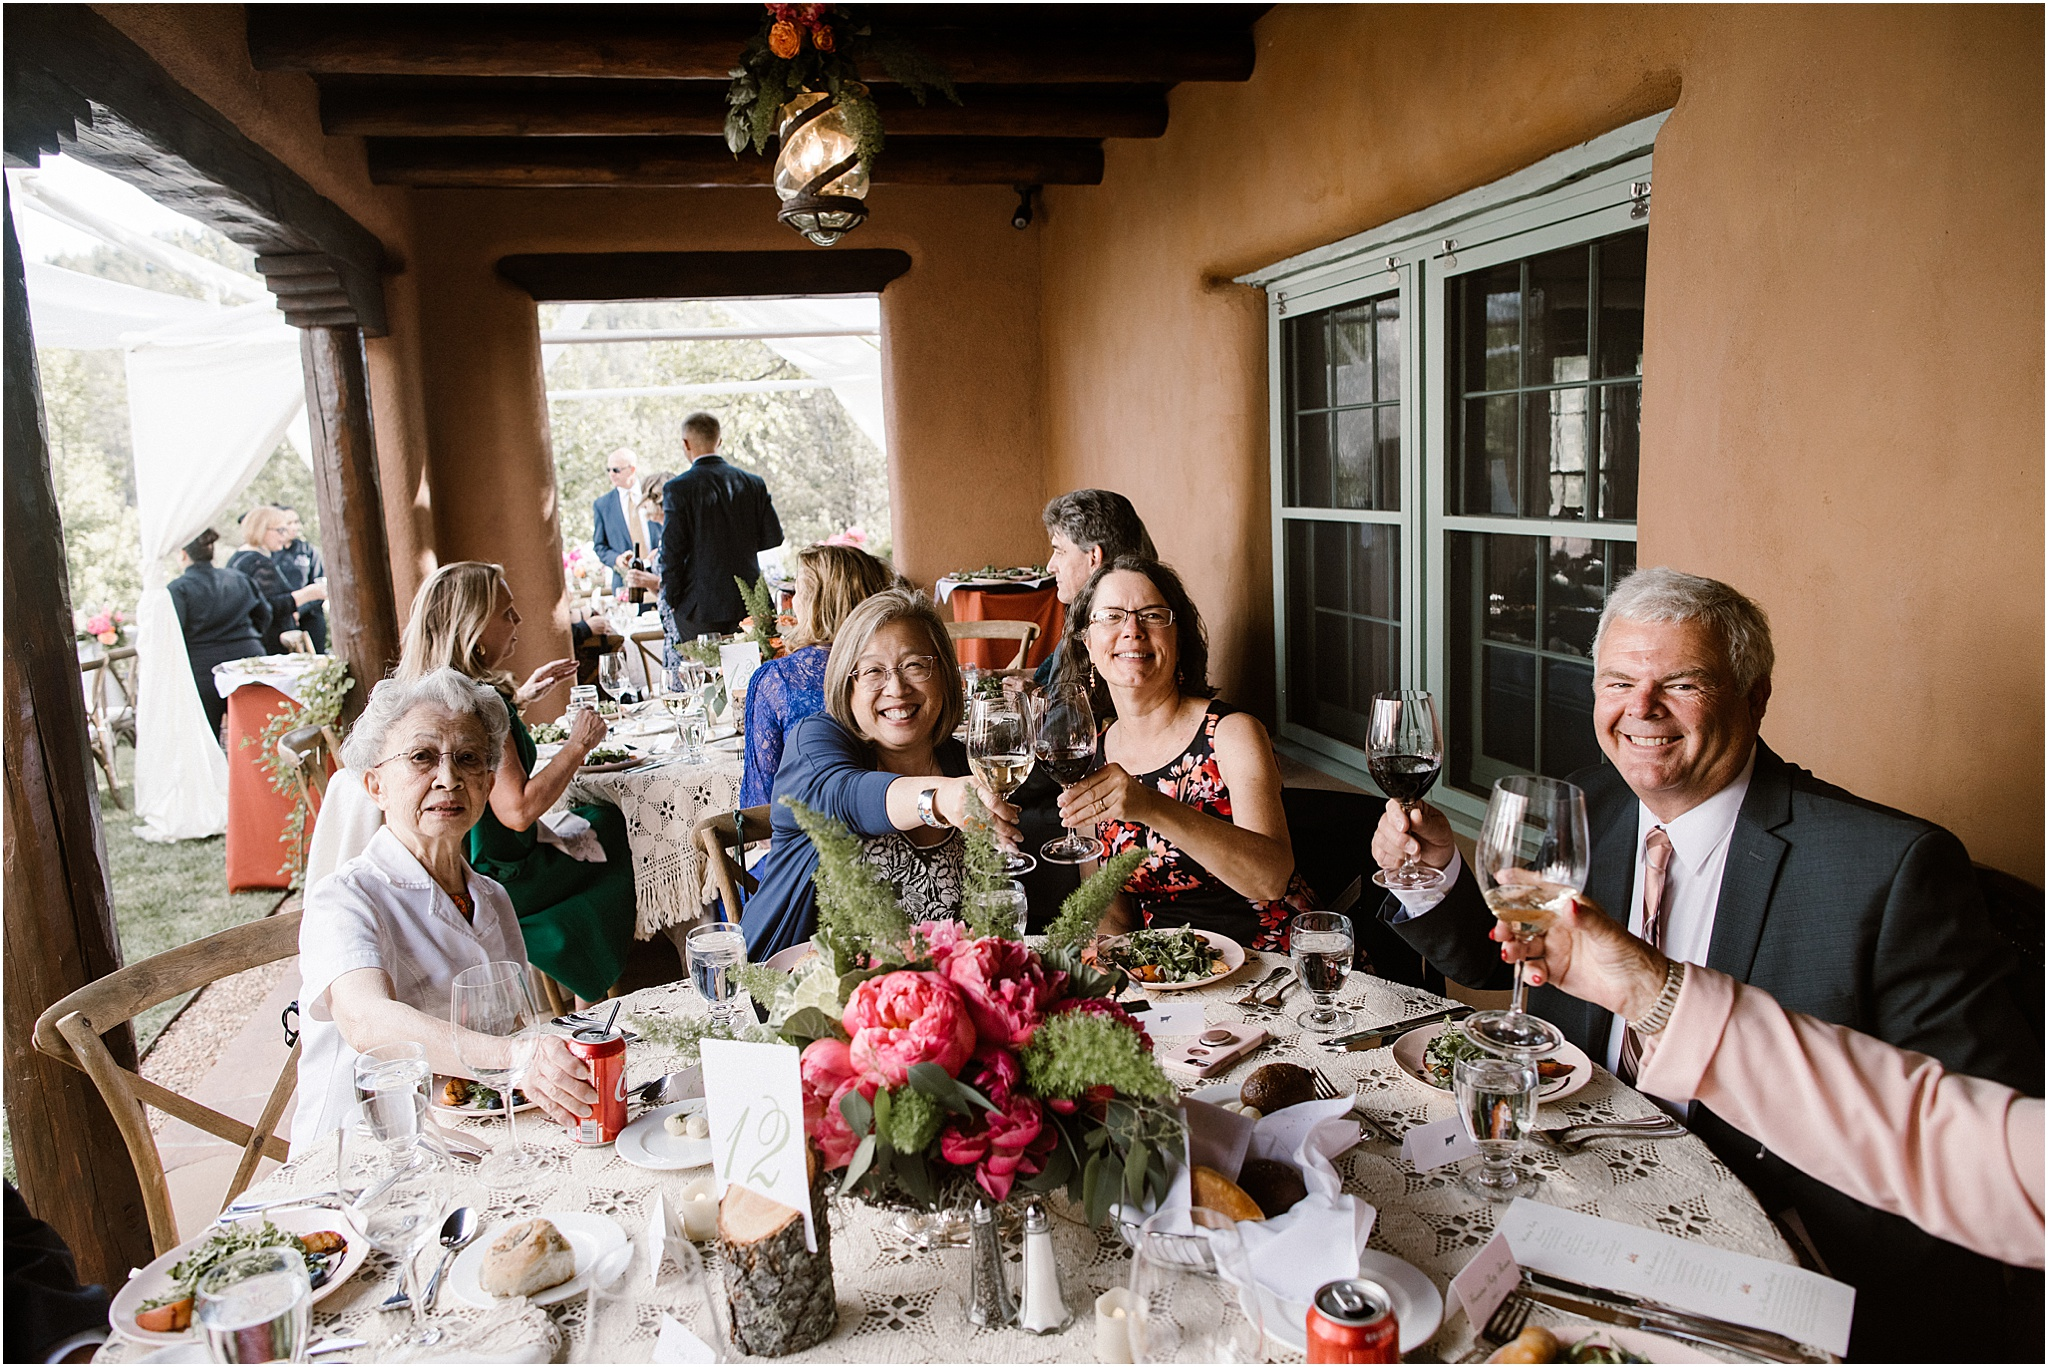 AMELIA_JASON_SANTA FE_ WEDDING_BLUE ROSE PHOTOGRAPHY103